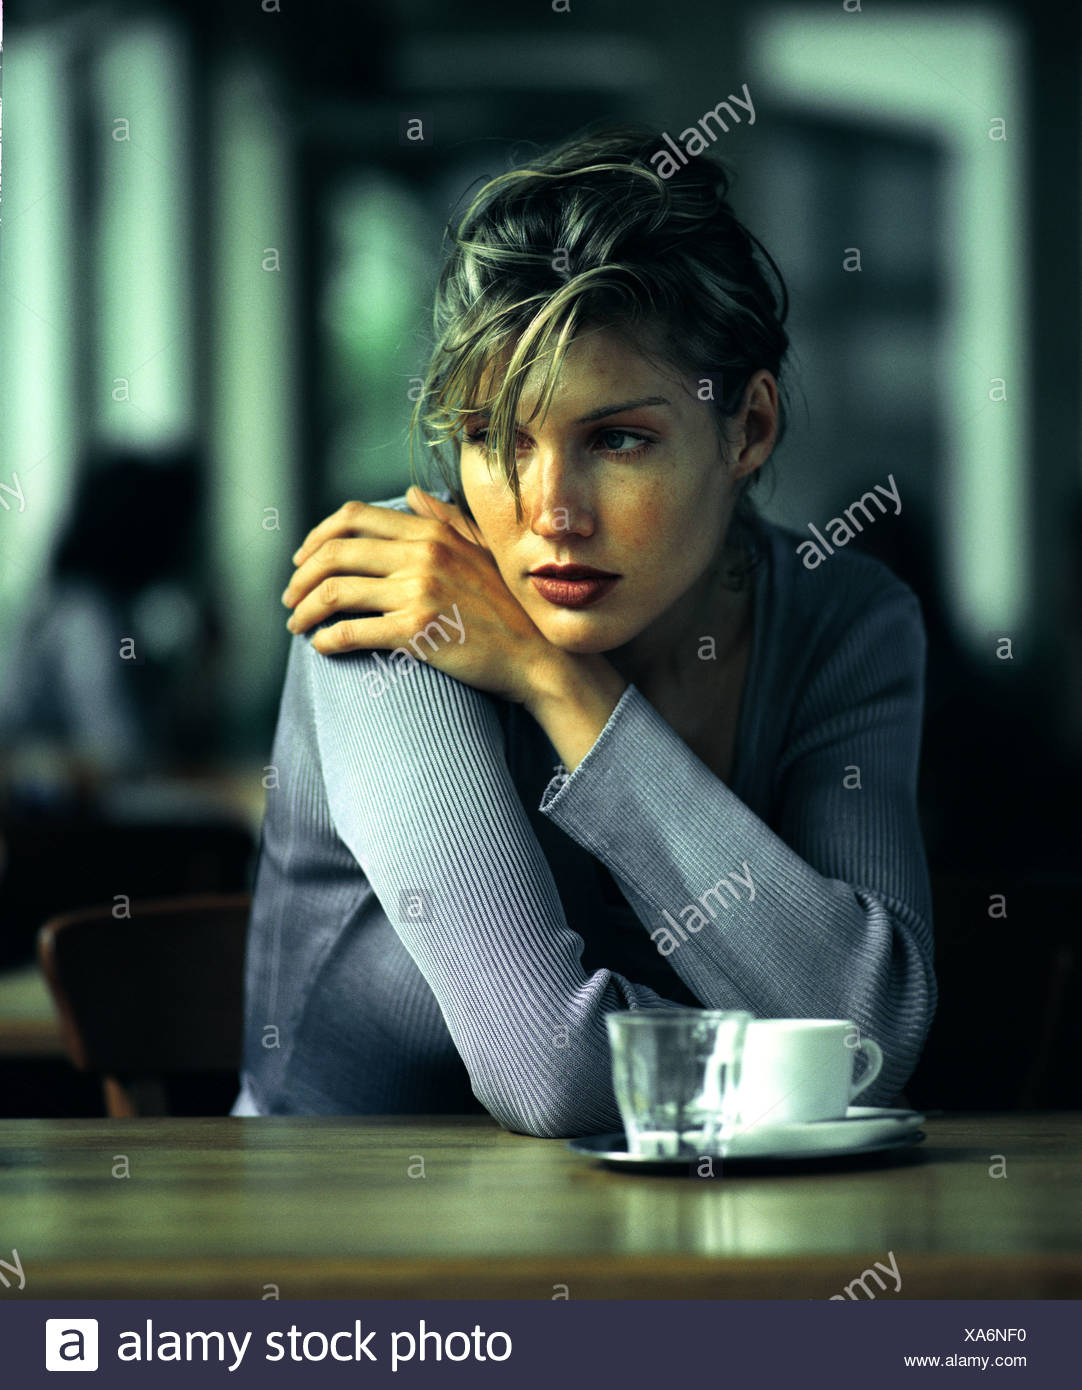 Woman sitting at table - Stock Image